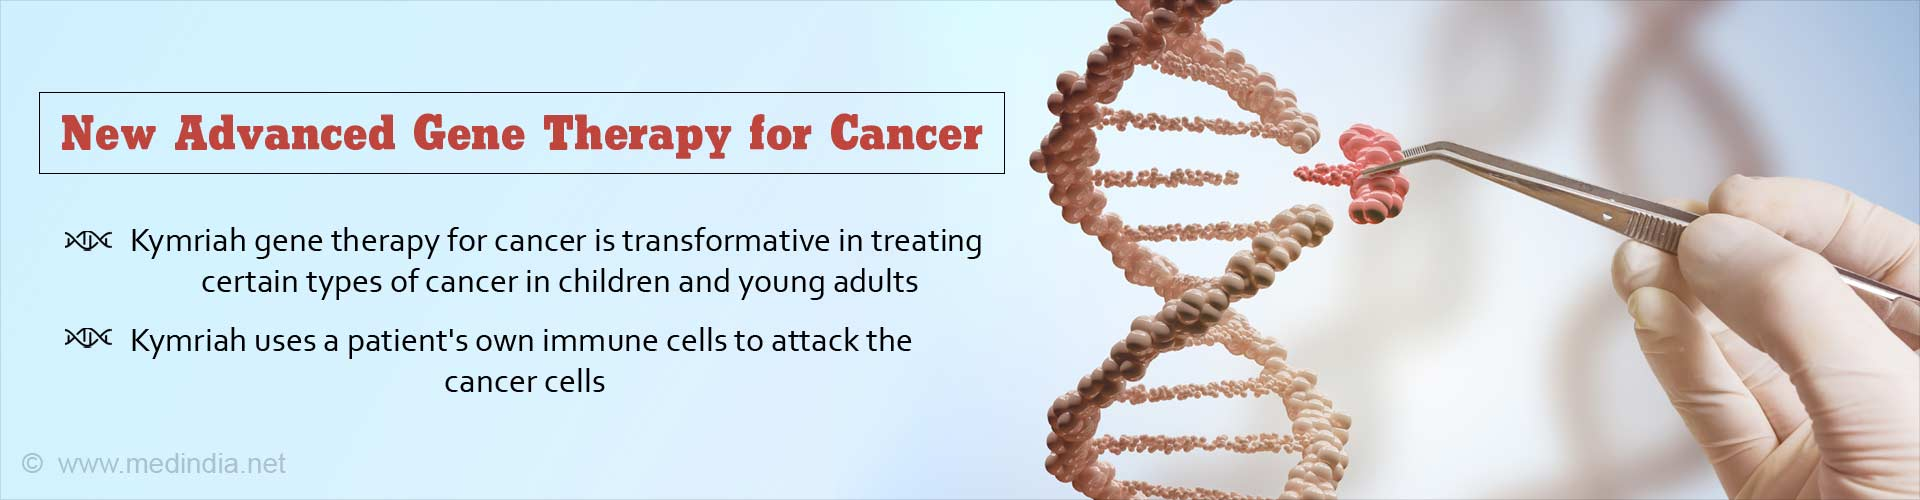 new advanced gene therapy for cancer - kymriah gene therapy for cancer is transformative in treating certain types of cancer in children and young adults - kymriah uses a patient's own immune cells to attack the cancer cells